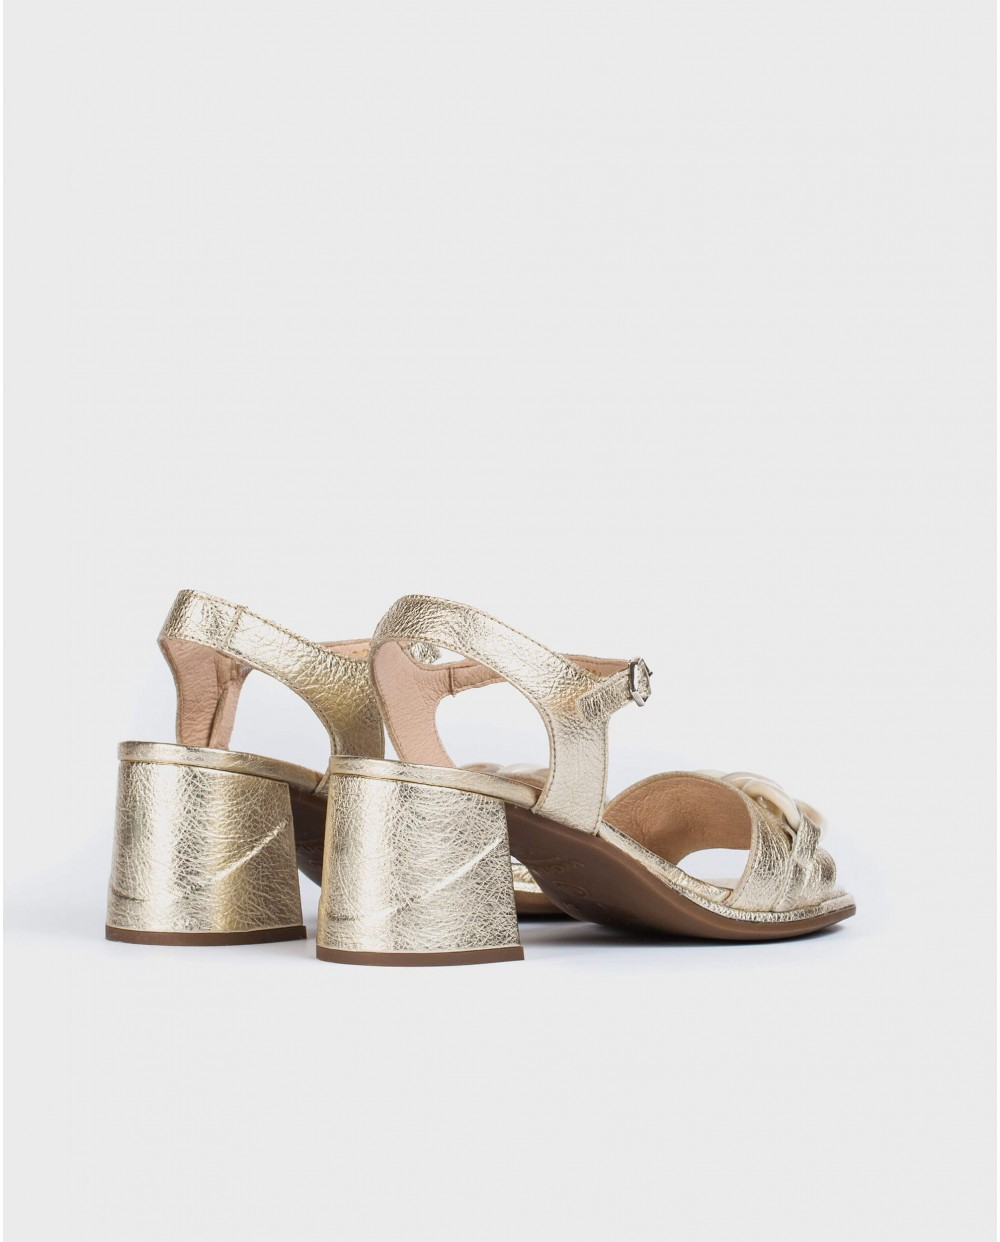 Wonders-Sandals-Sandal with chain